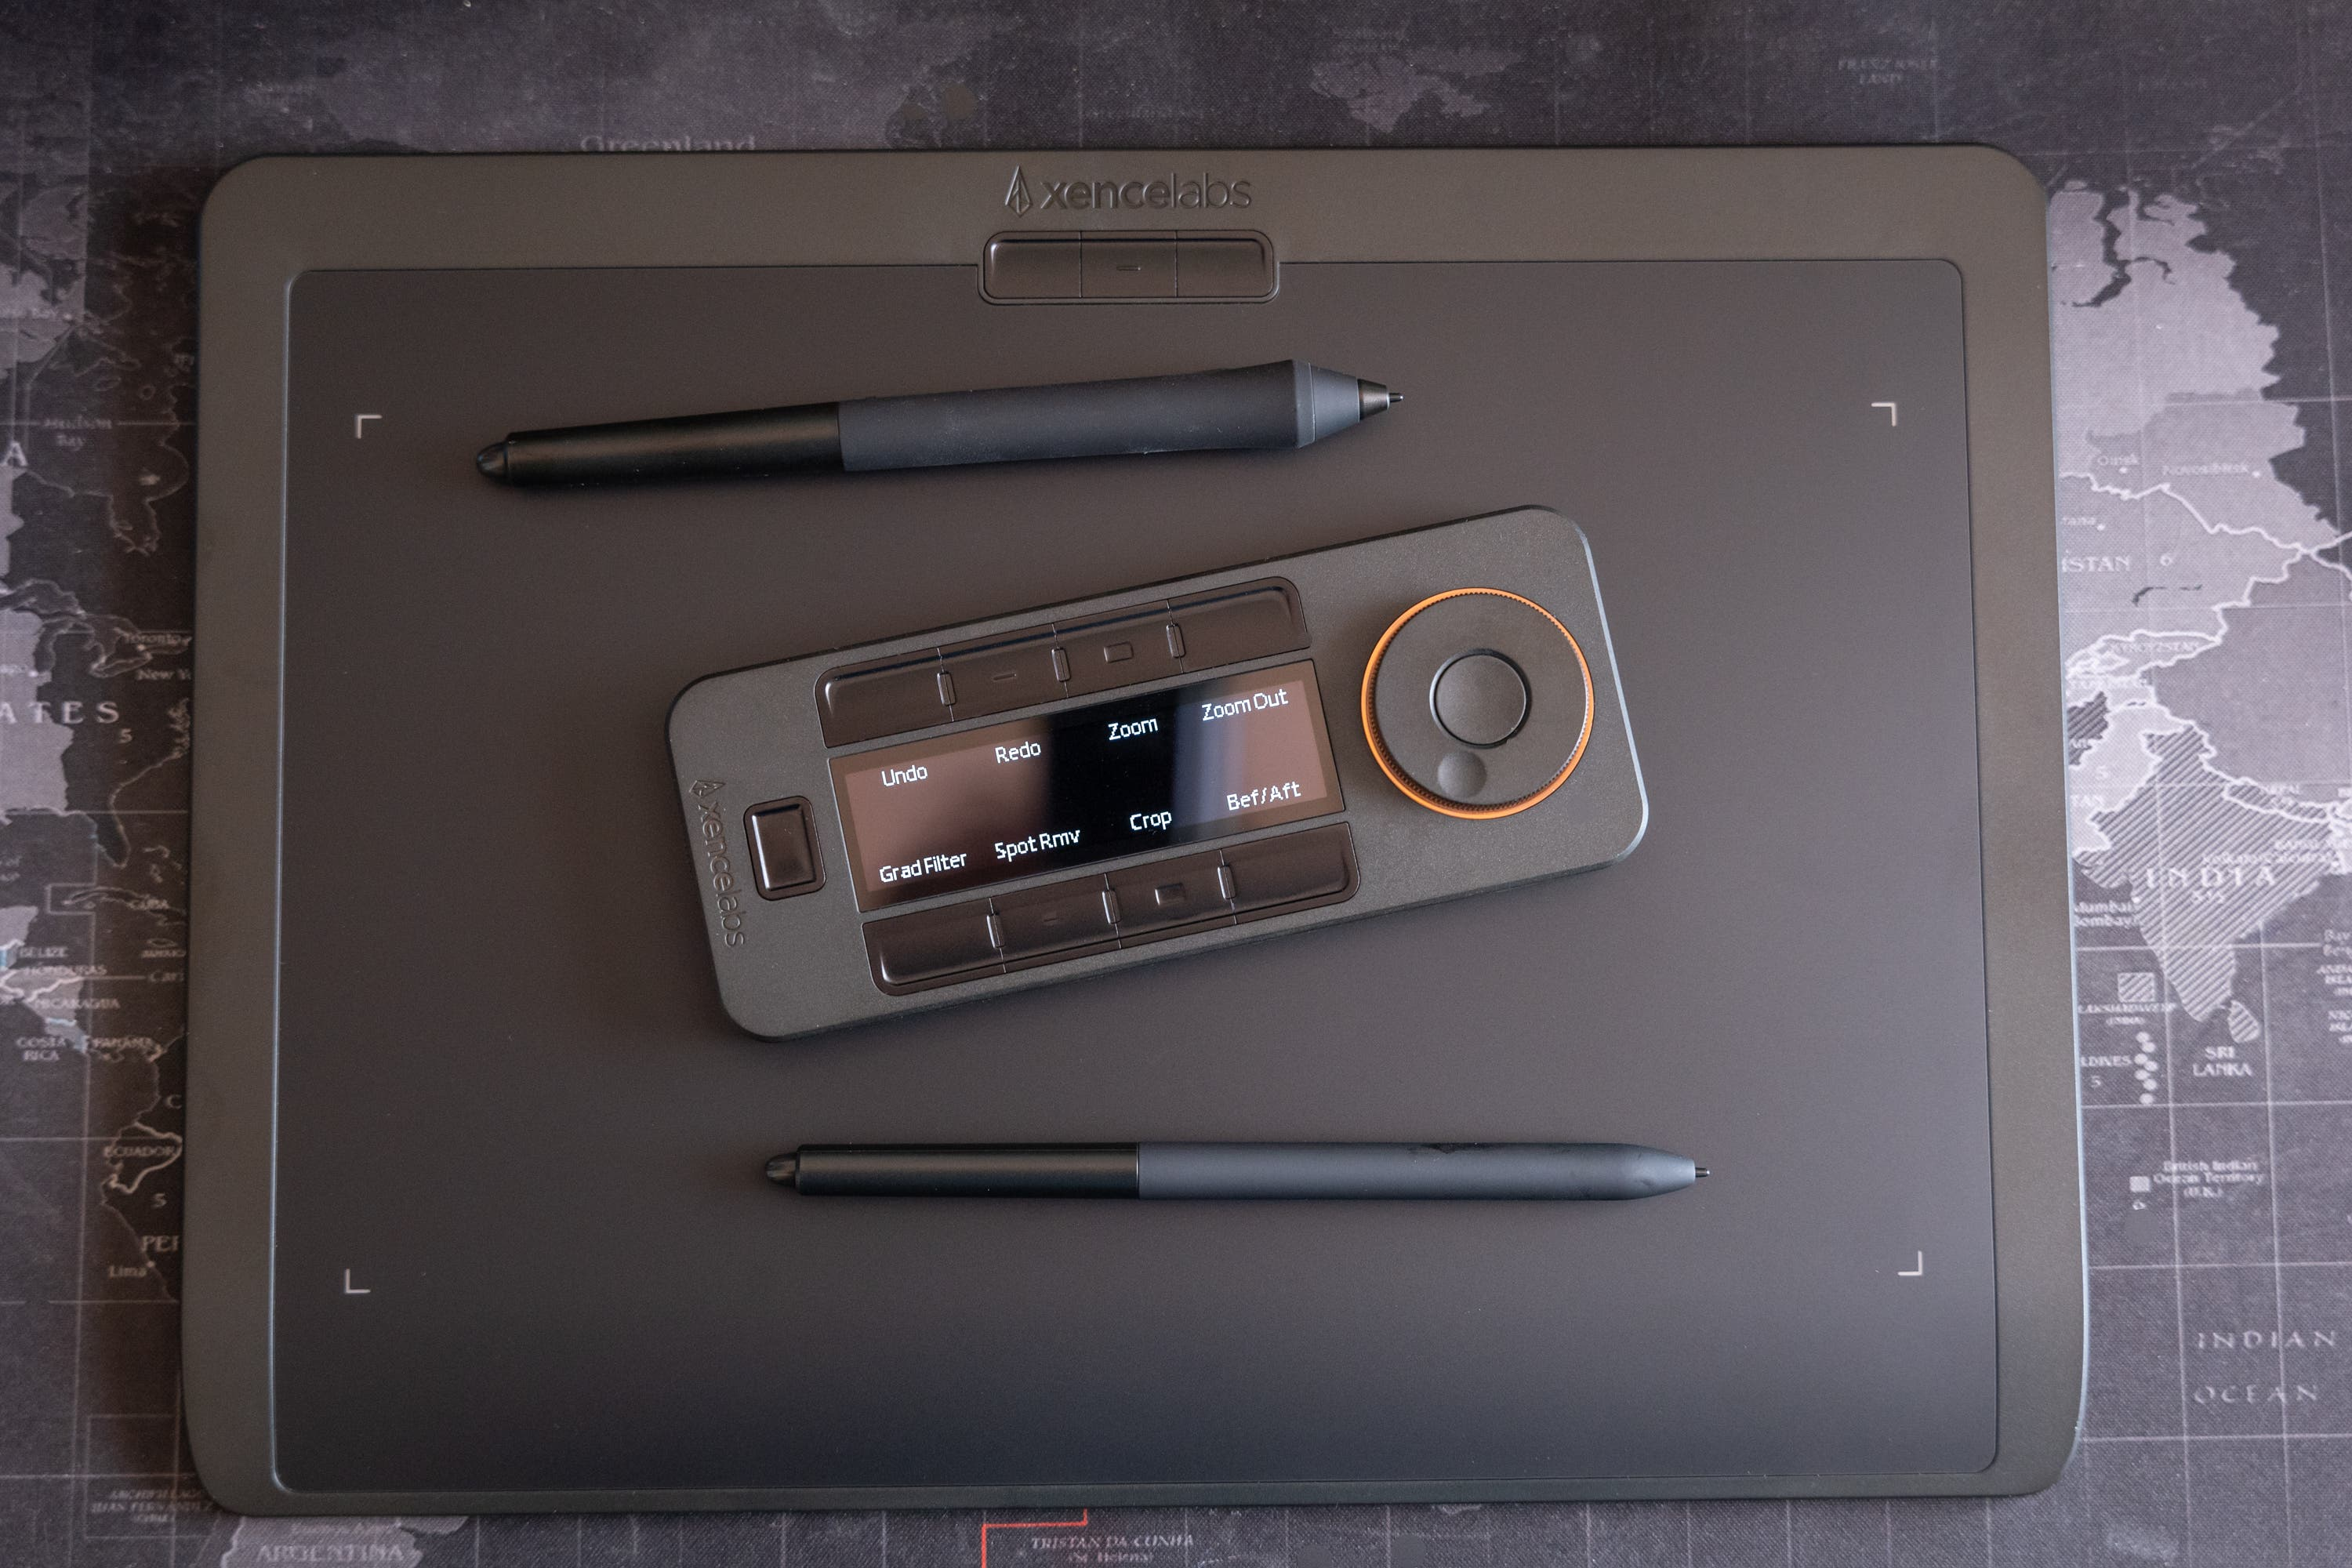 Your Time's Up Wacom: Xencelabs Pen Tablet With Quick Keys Review